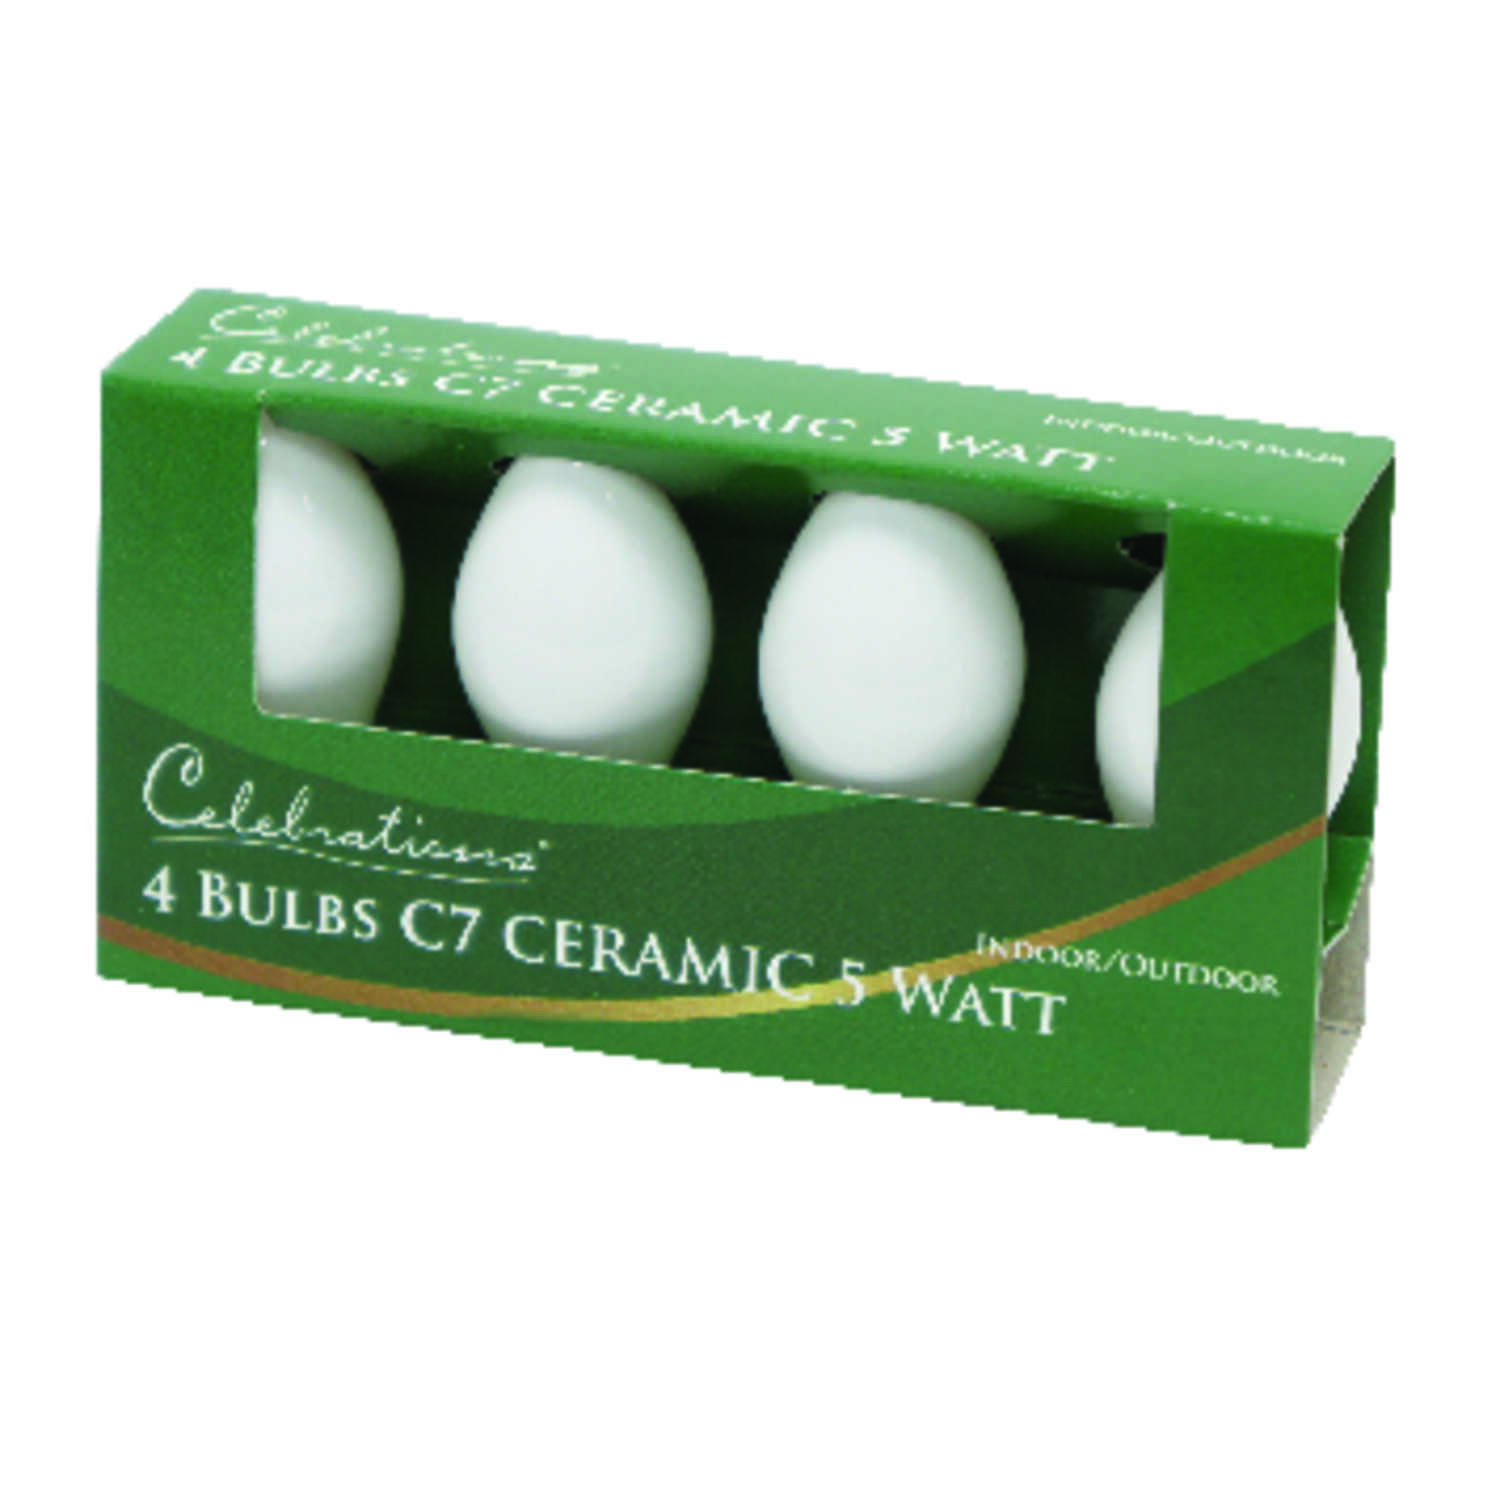 Celebrations  Incandescent  Ceramic C7  Replacement Bulb  White  4 pk